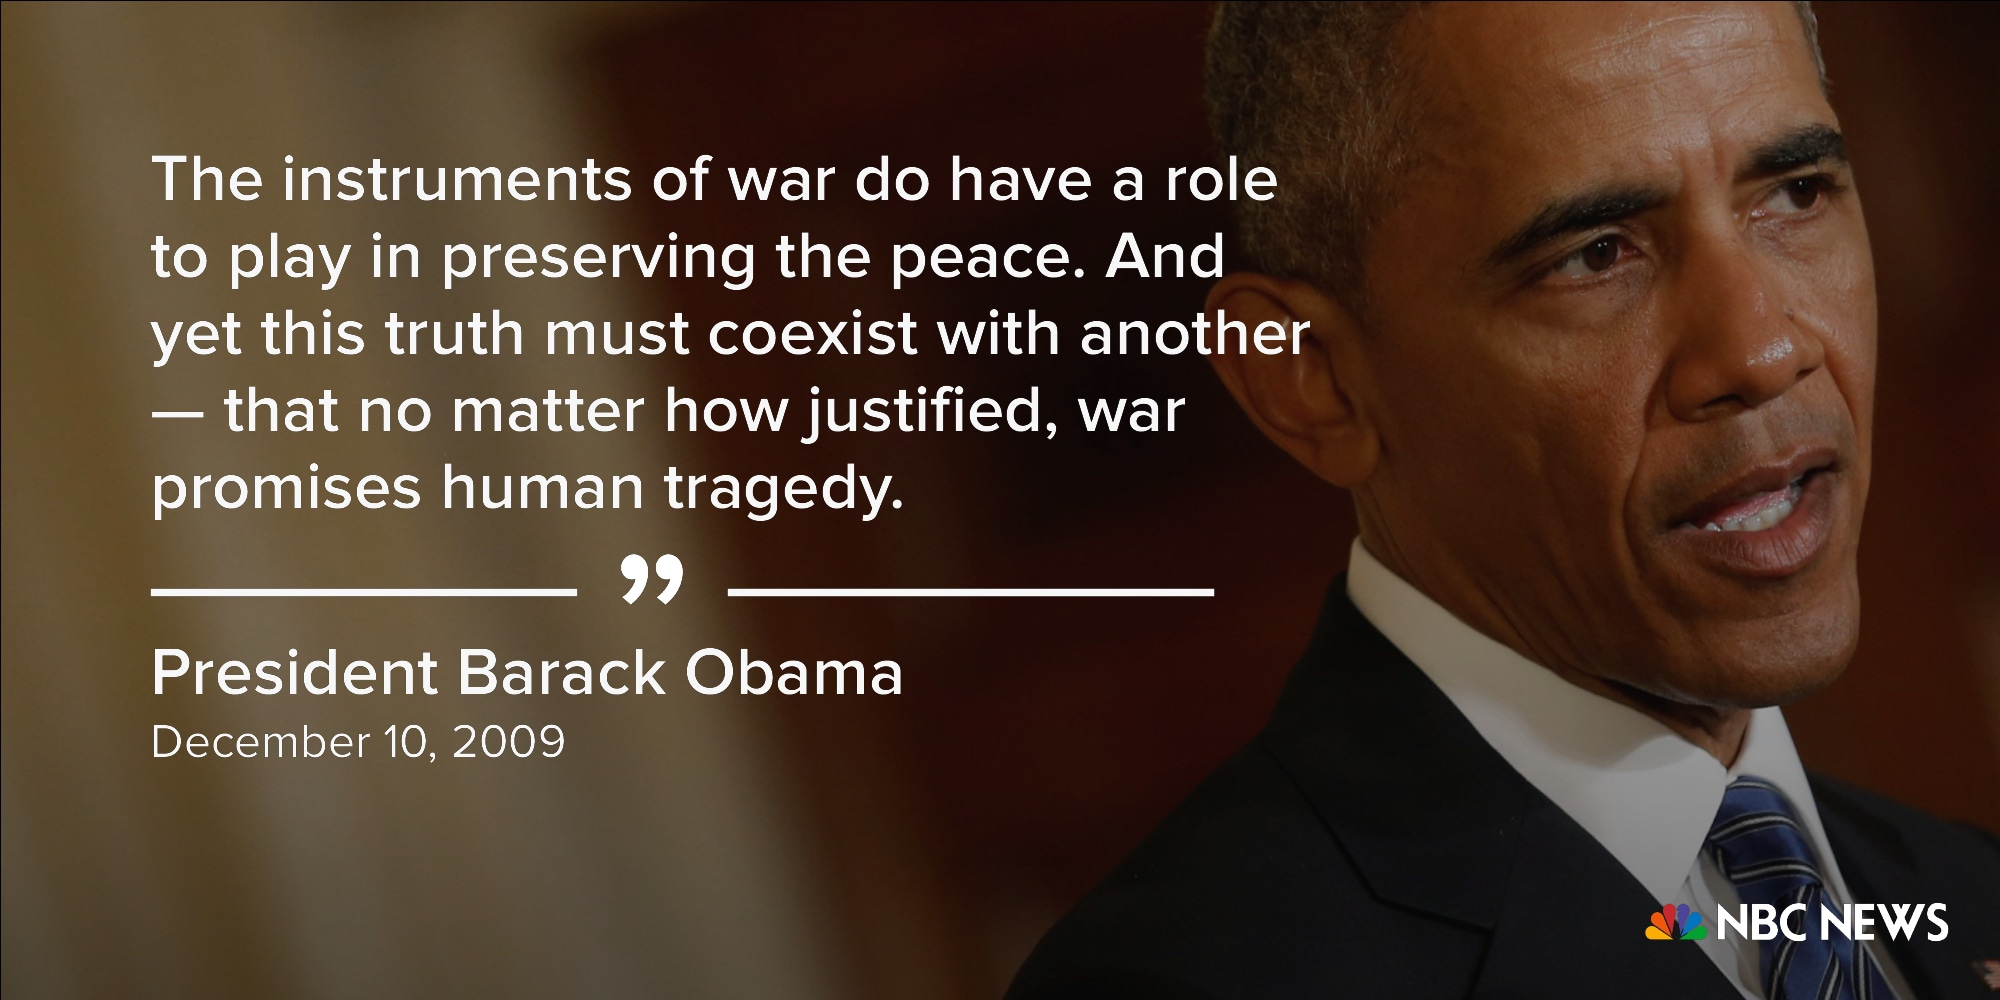 Most Famous Quotes The 15 Most Telling Quotes Of Obama's Presidency  Nbc News